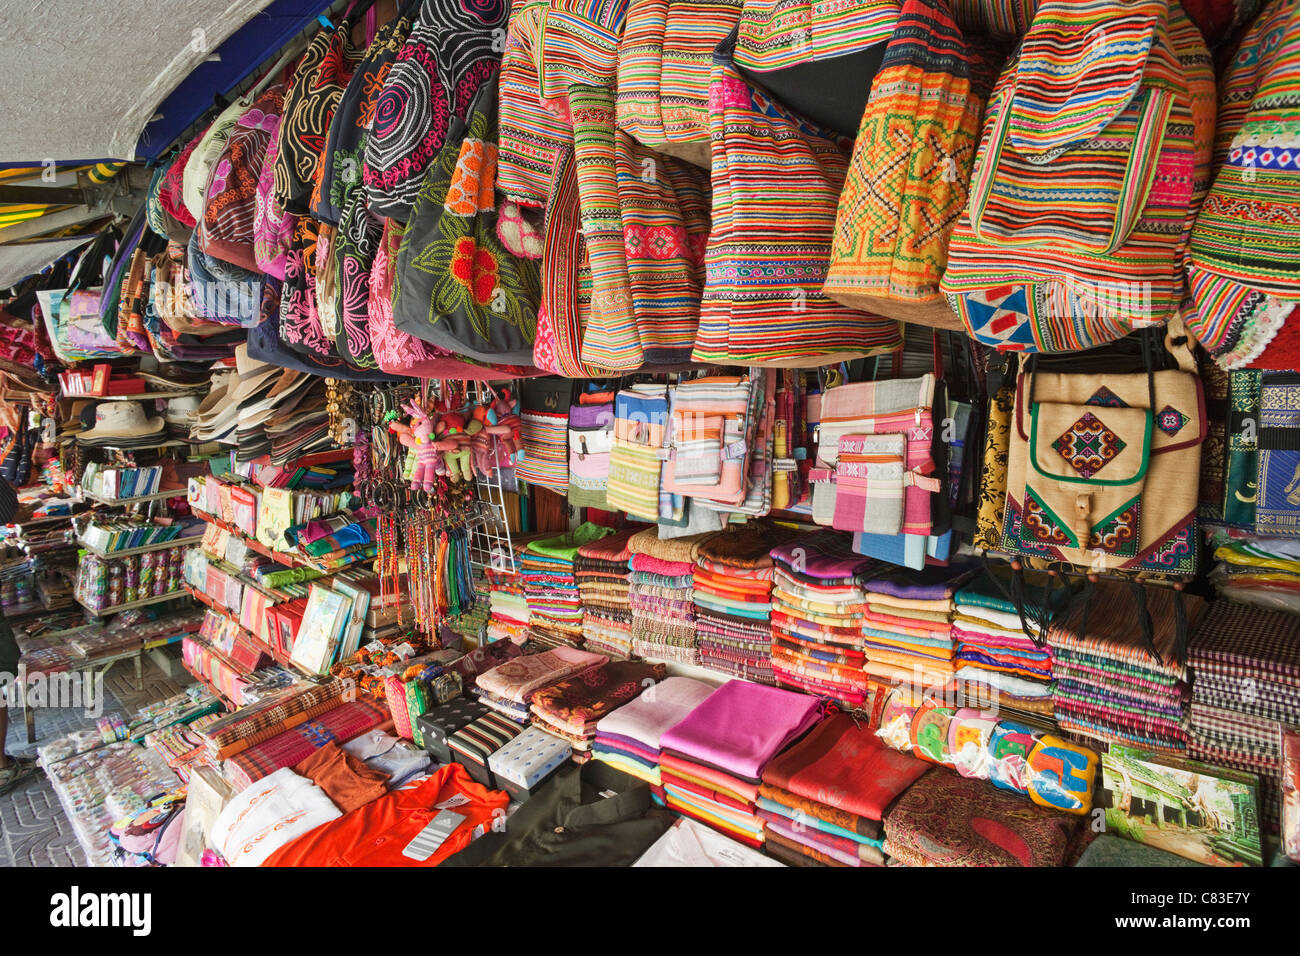 Cambodia Siem Reap The Old Market Bag Shop Stock Photo